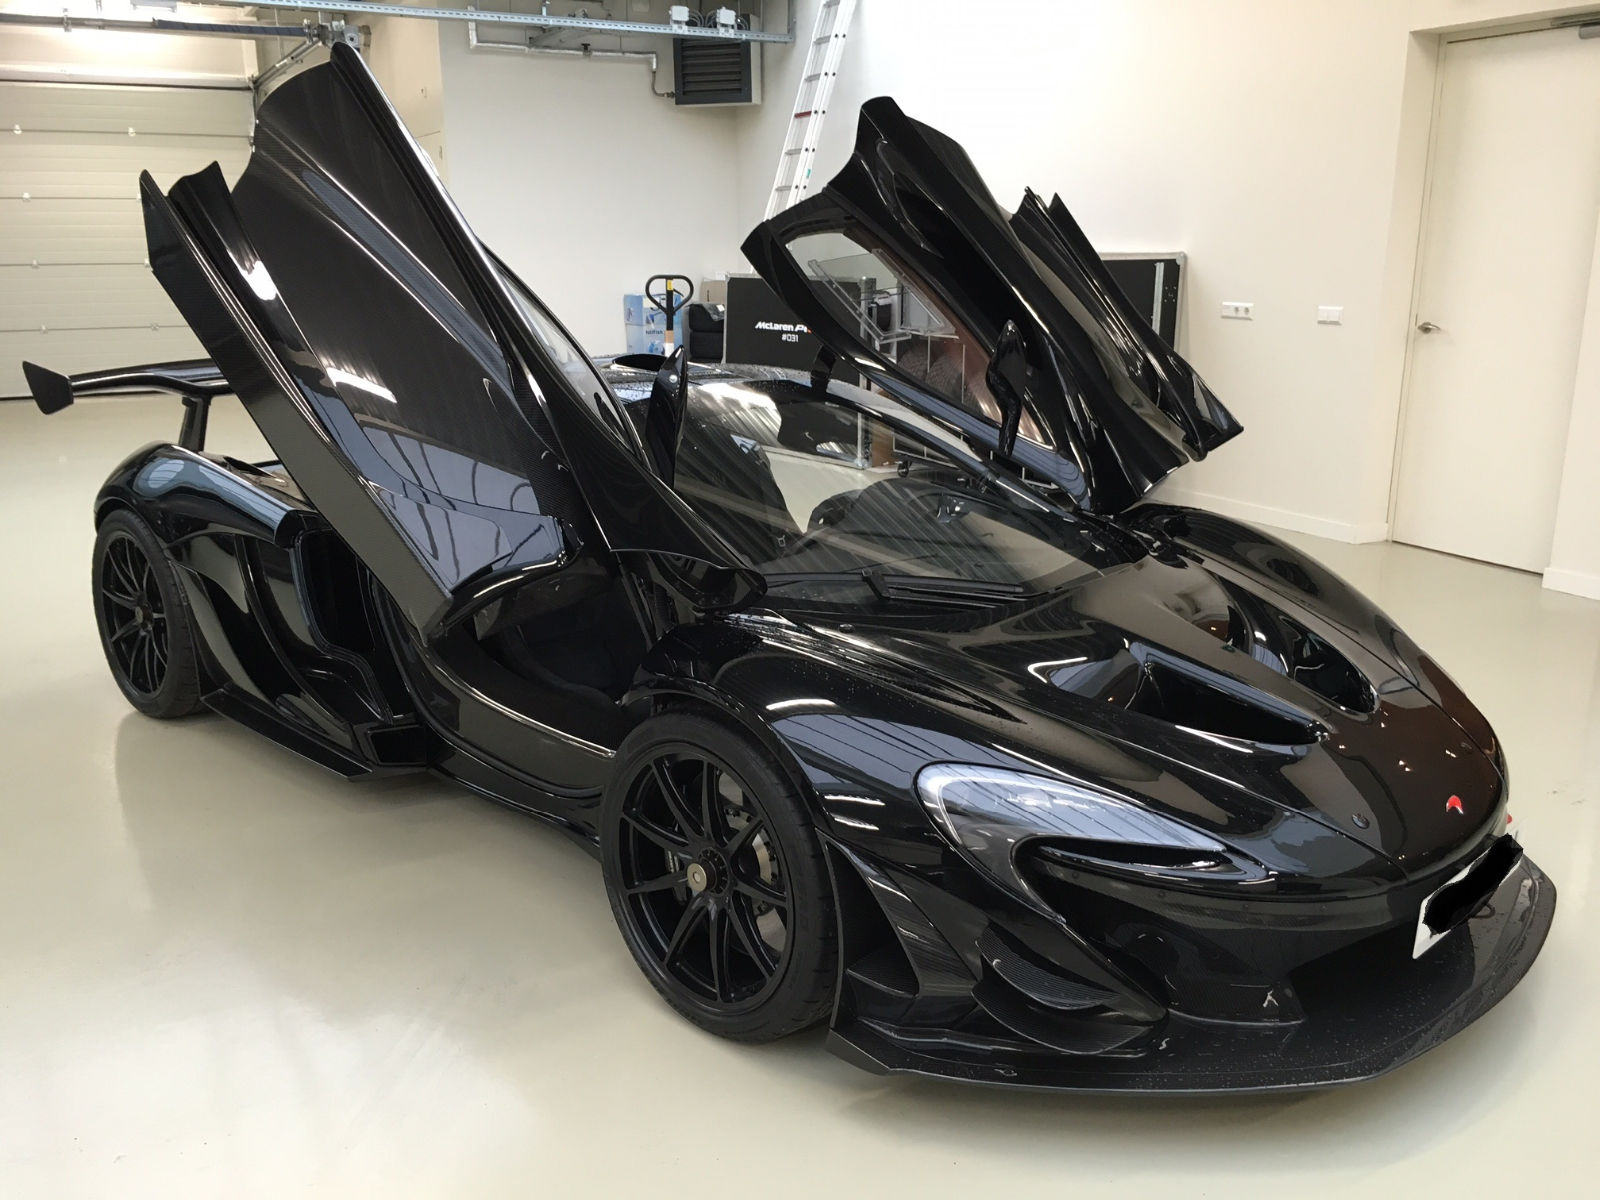 Mclaren 675lt For Sale >> Three Road Legal McLaren P1 GTR Available For Sale With ...